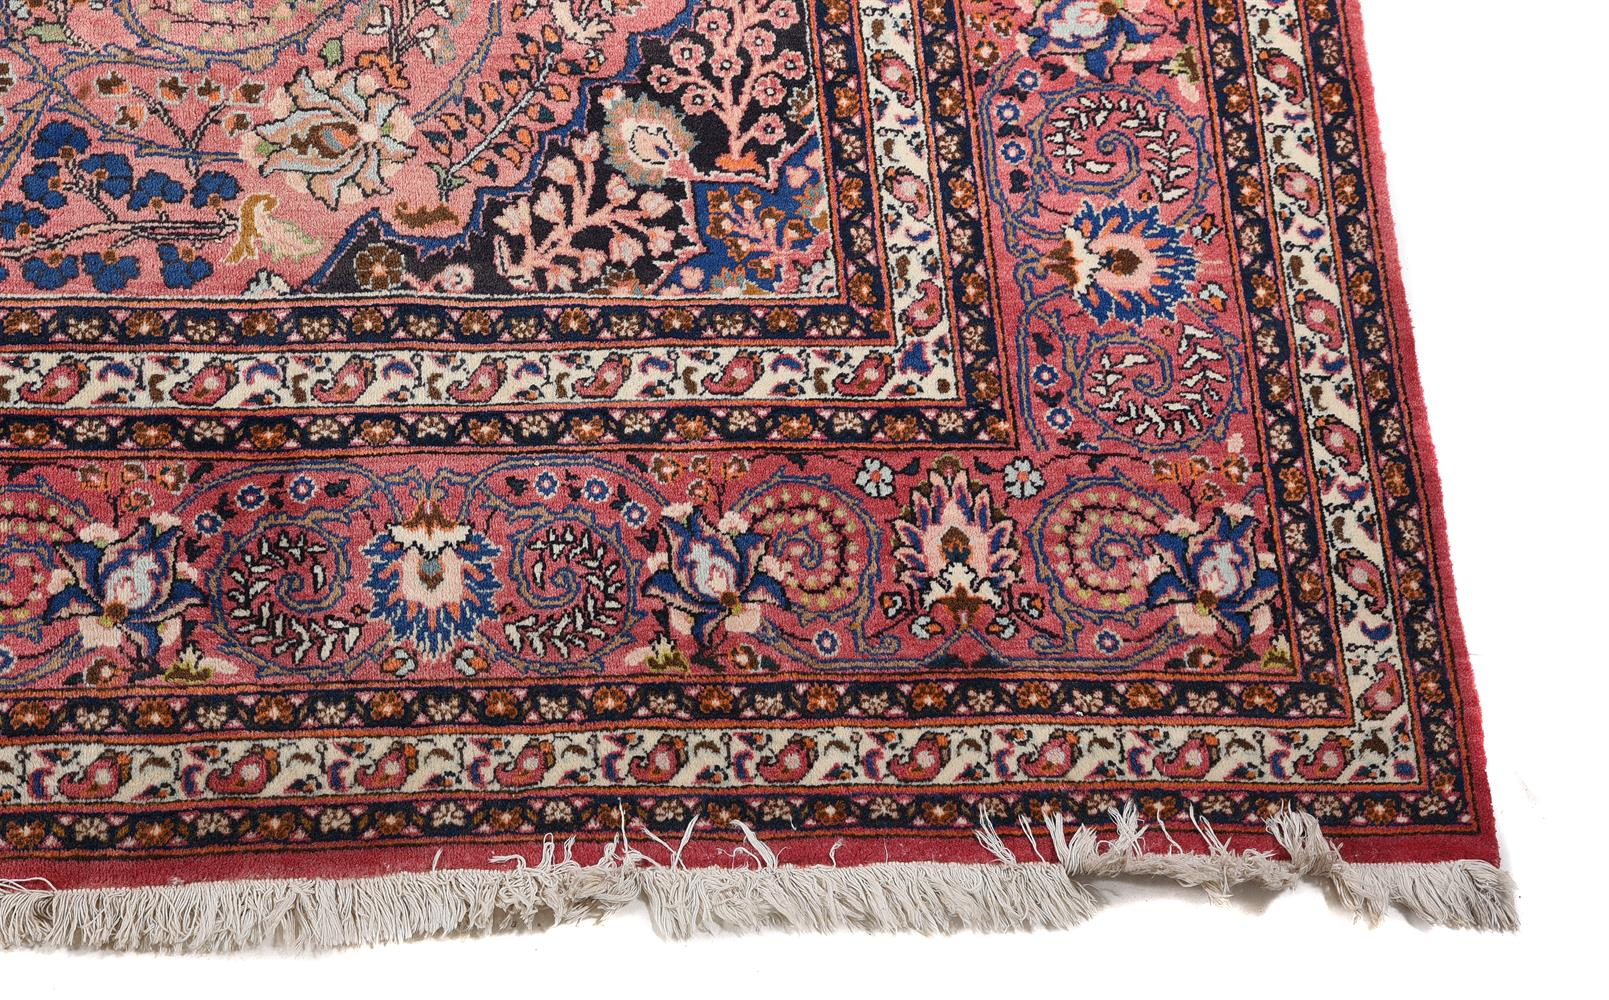 A Meshed carpet - Image 4 of 4